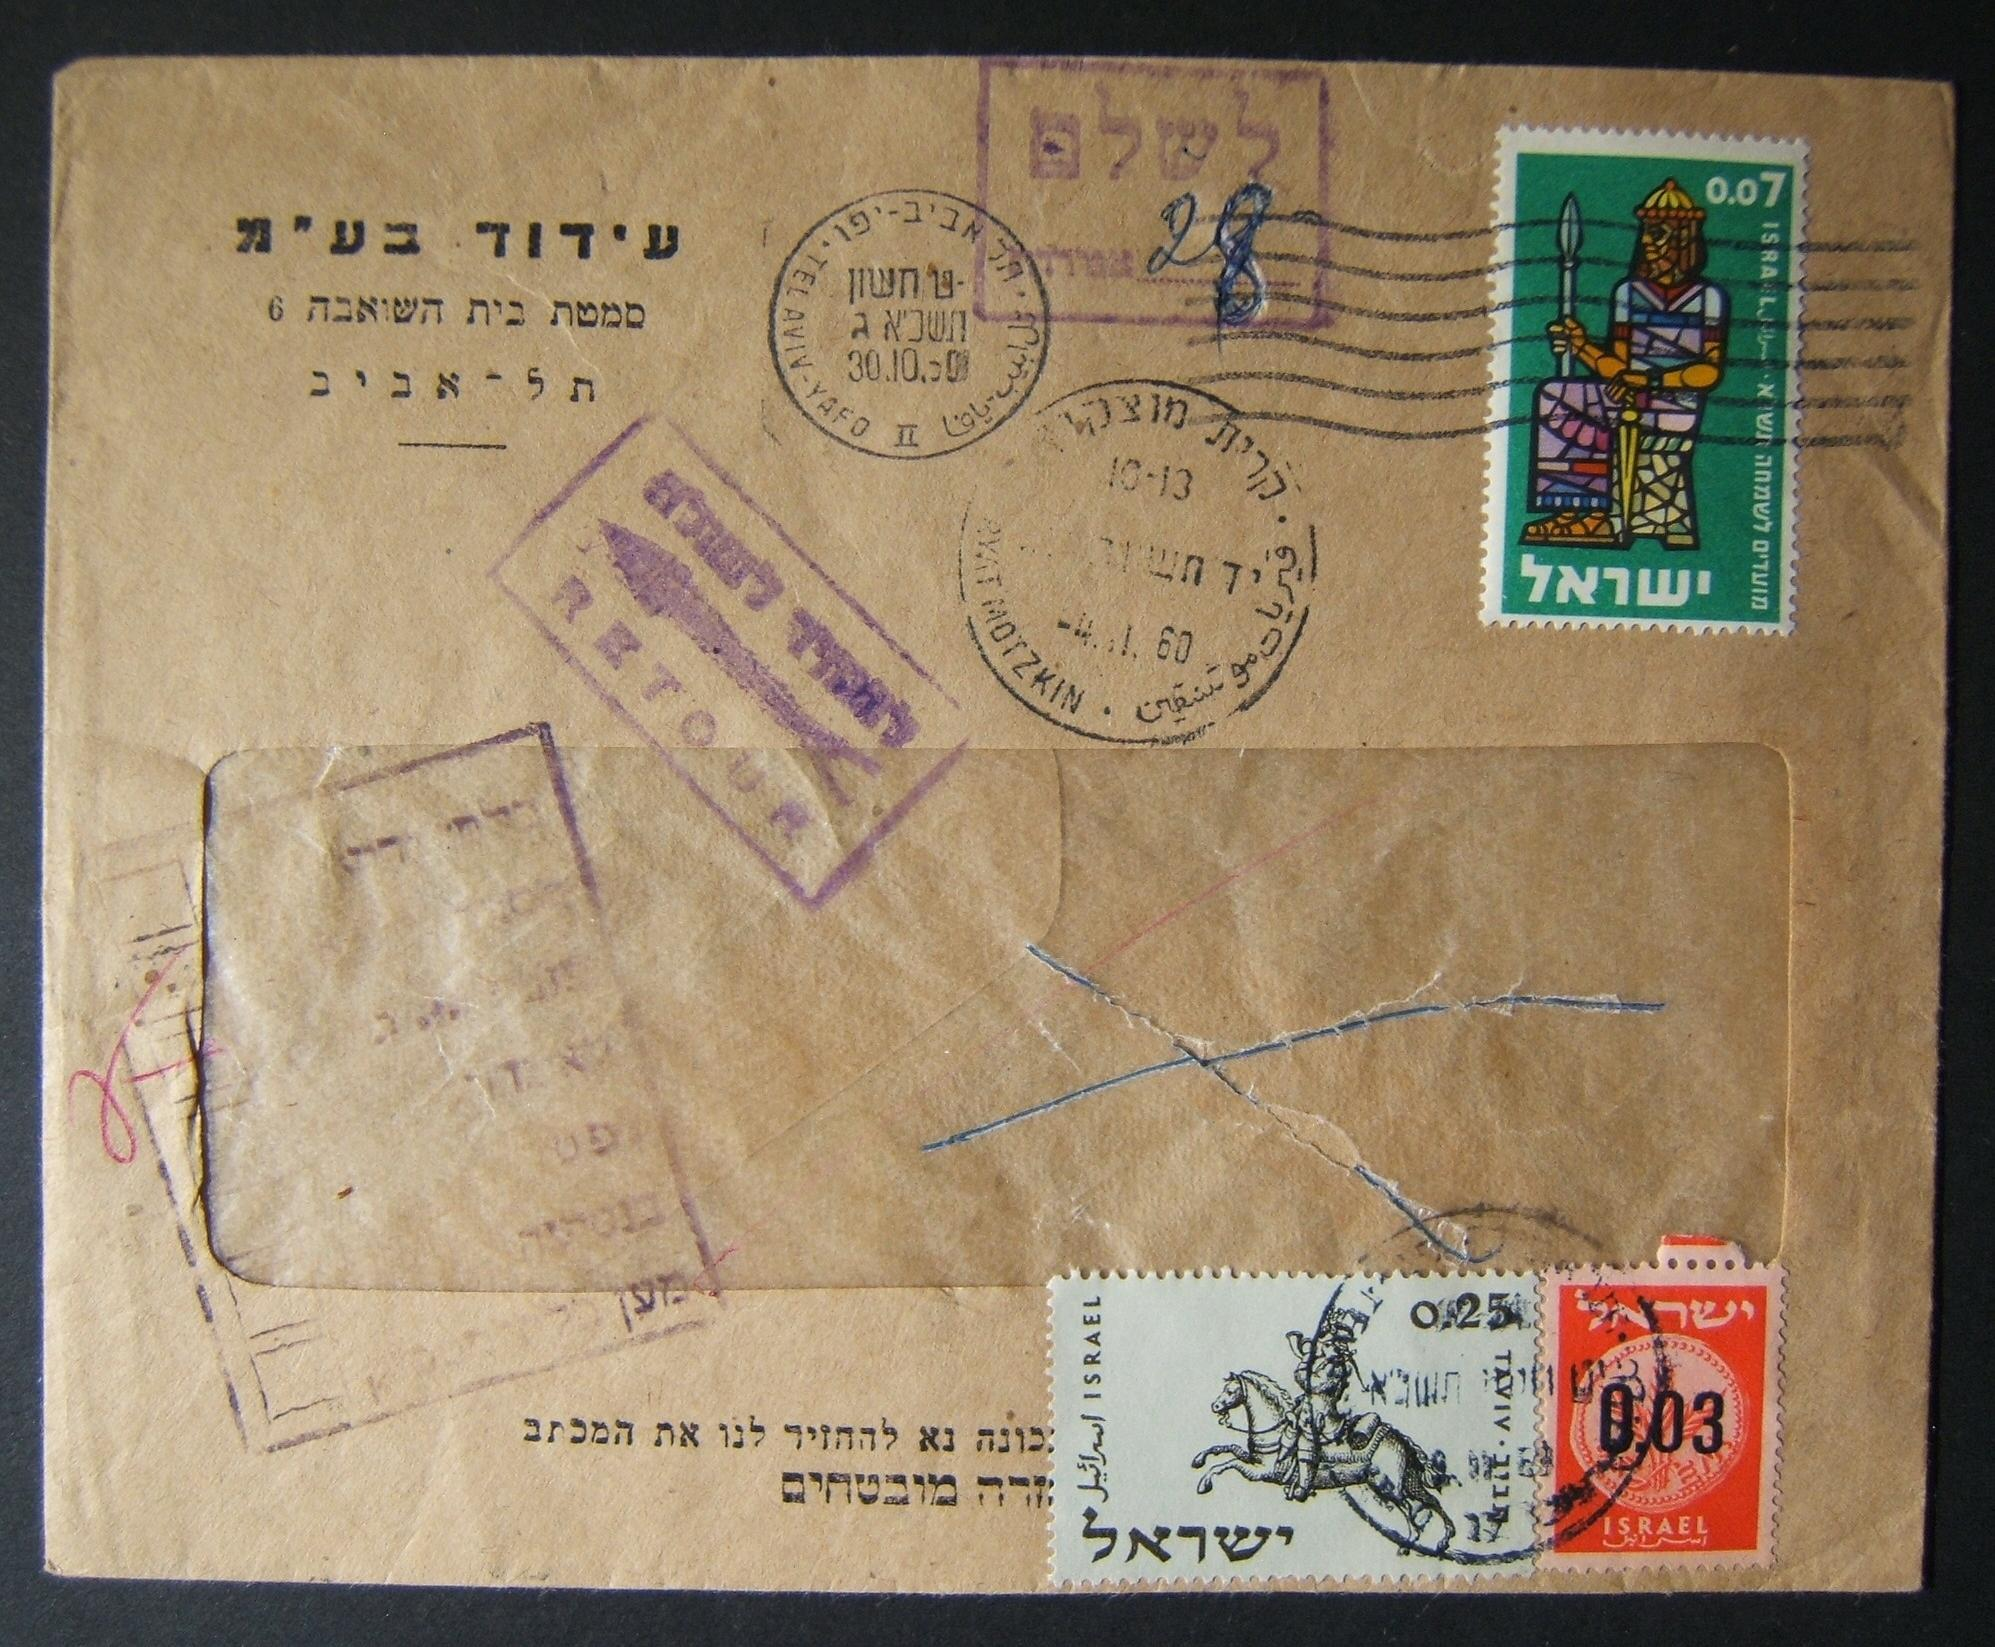 1960 domestic 'top of the pile' taxed franking: 30-10-60 printed matter commercial cover ex TLV branch of Idud Ltd. to KIRYAT MOTZKIN franked 7 Ag at the DO-10 period PM rate using